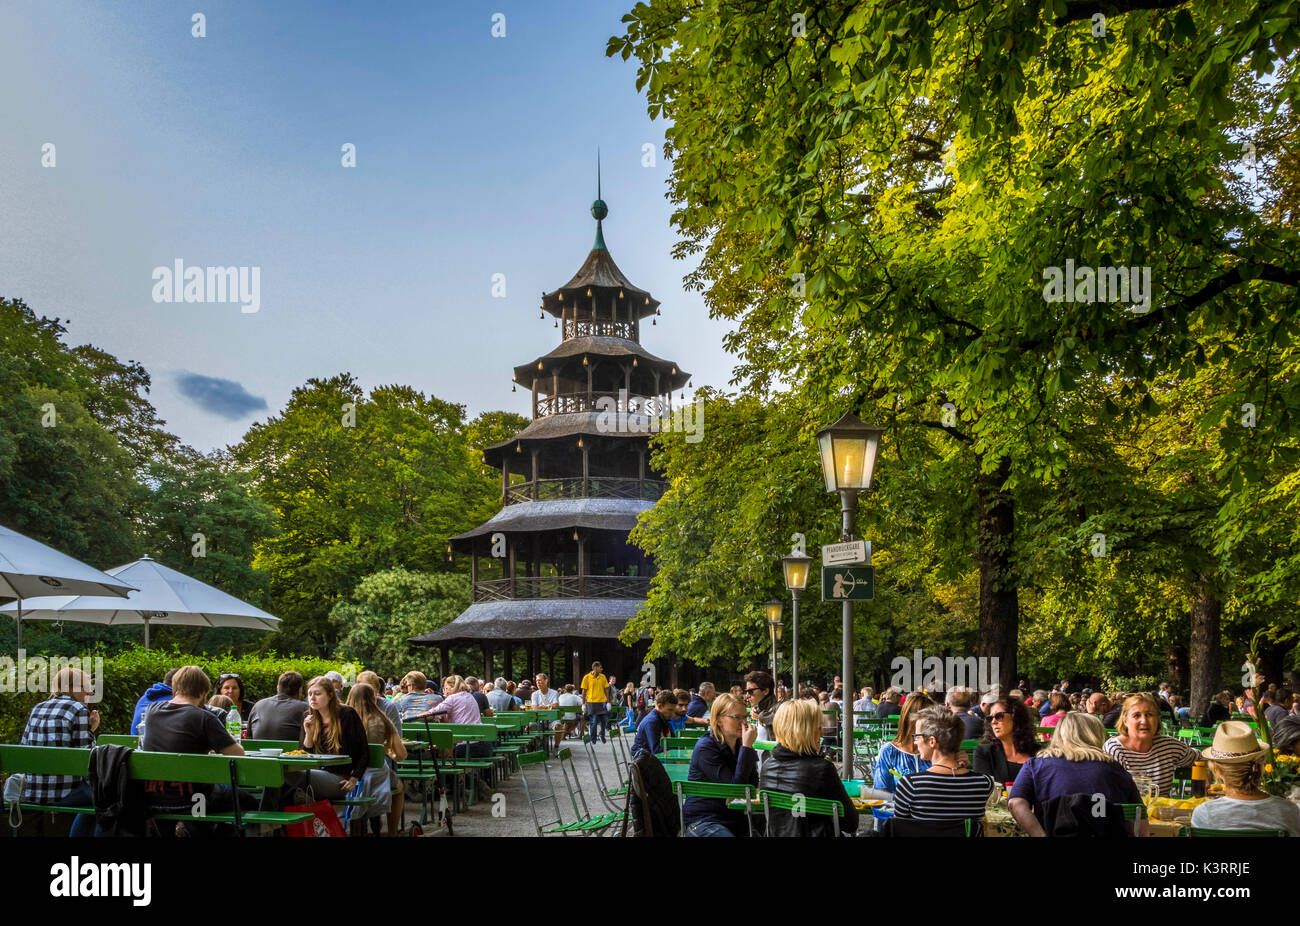 englischer garten beer stock photos englischer garten beer stock images alamy. Black Bedroom Furniture Sets. Home Design Ideas